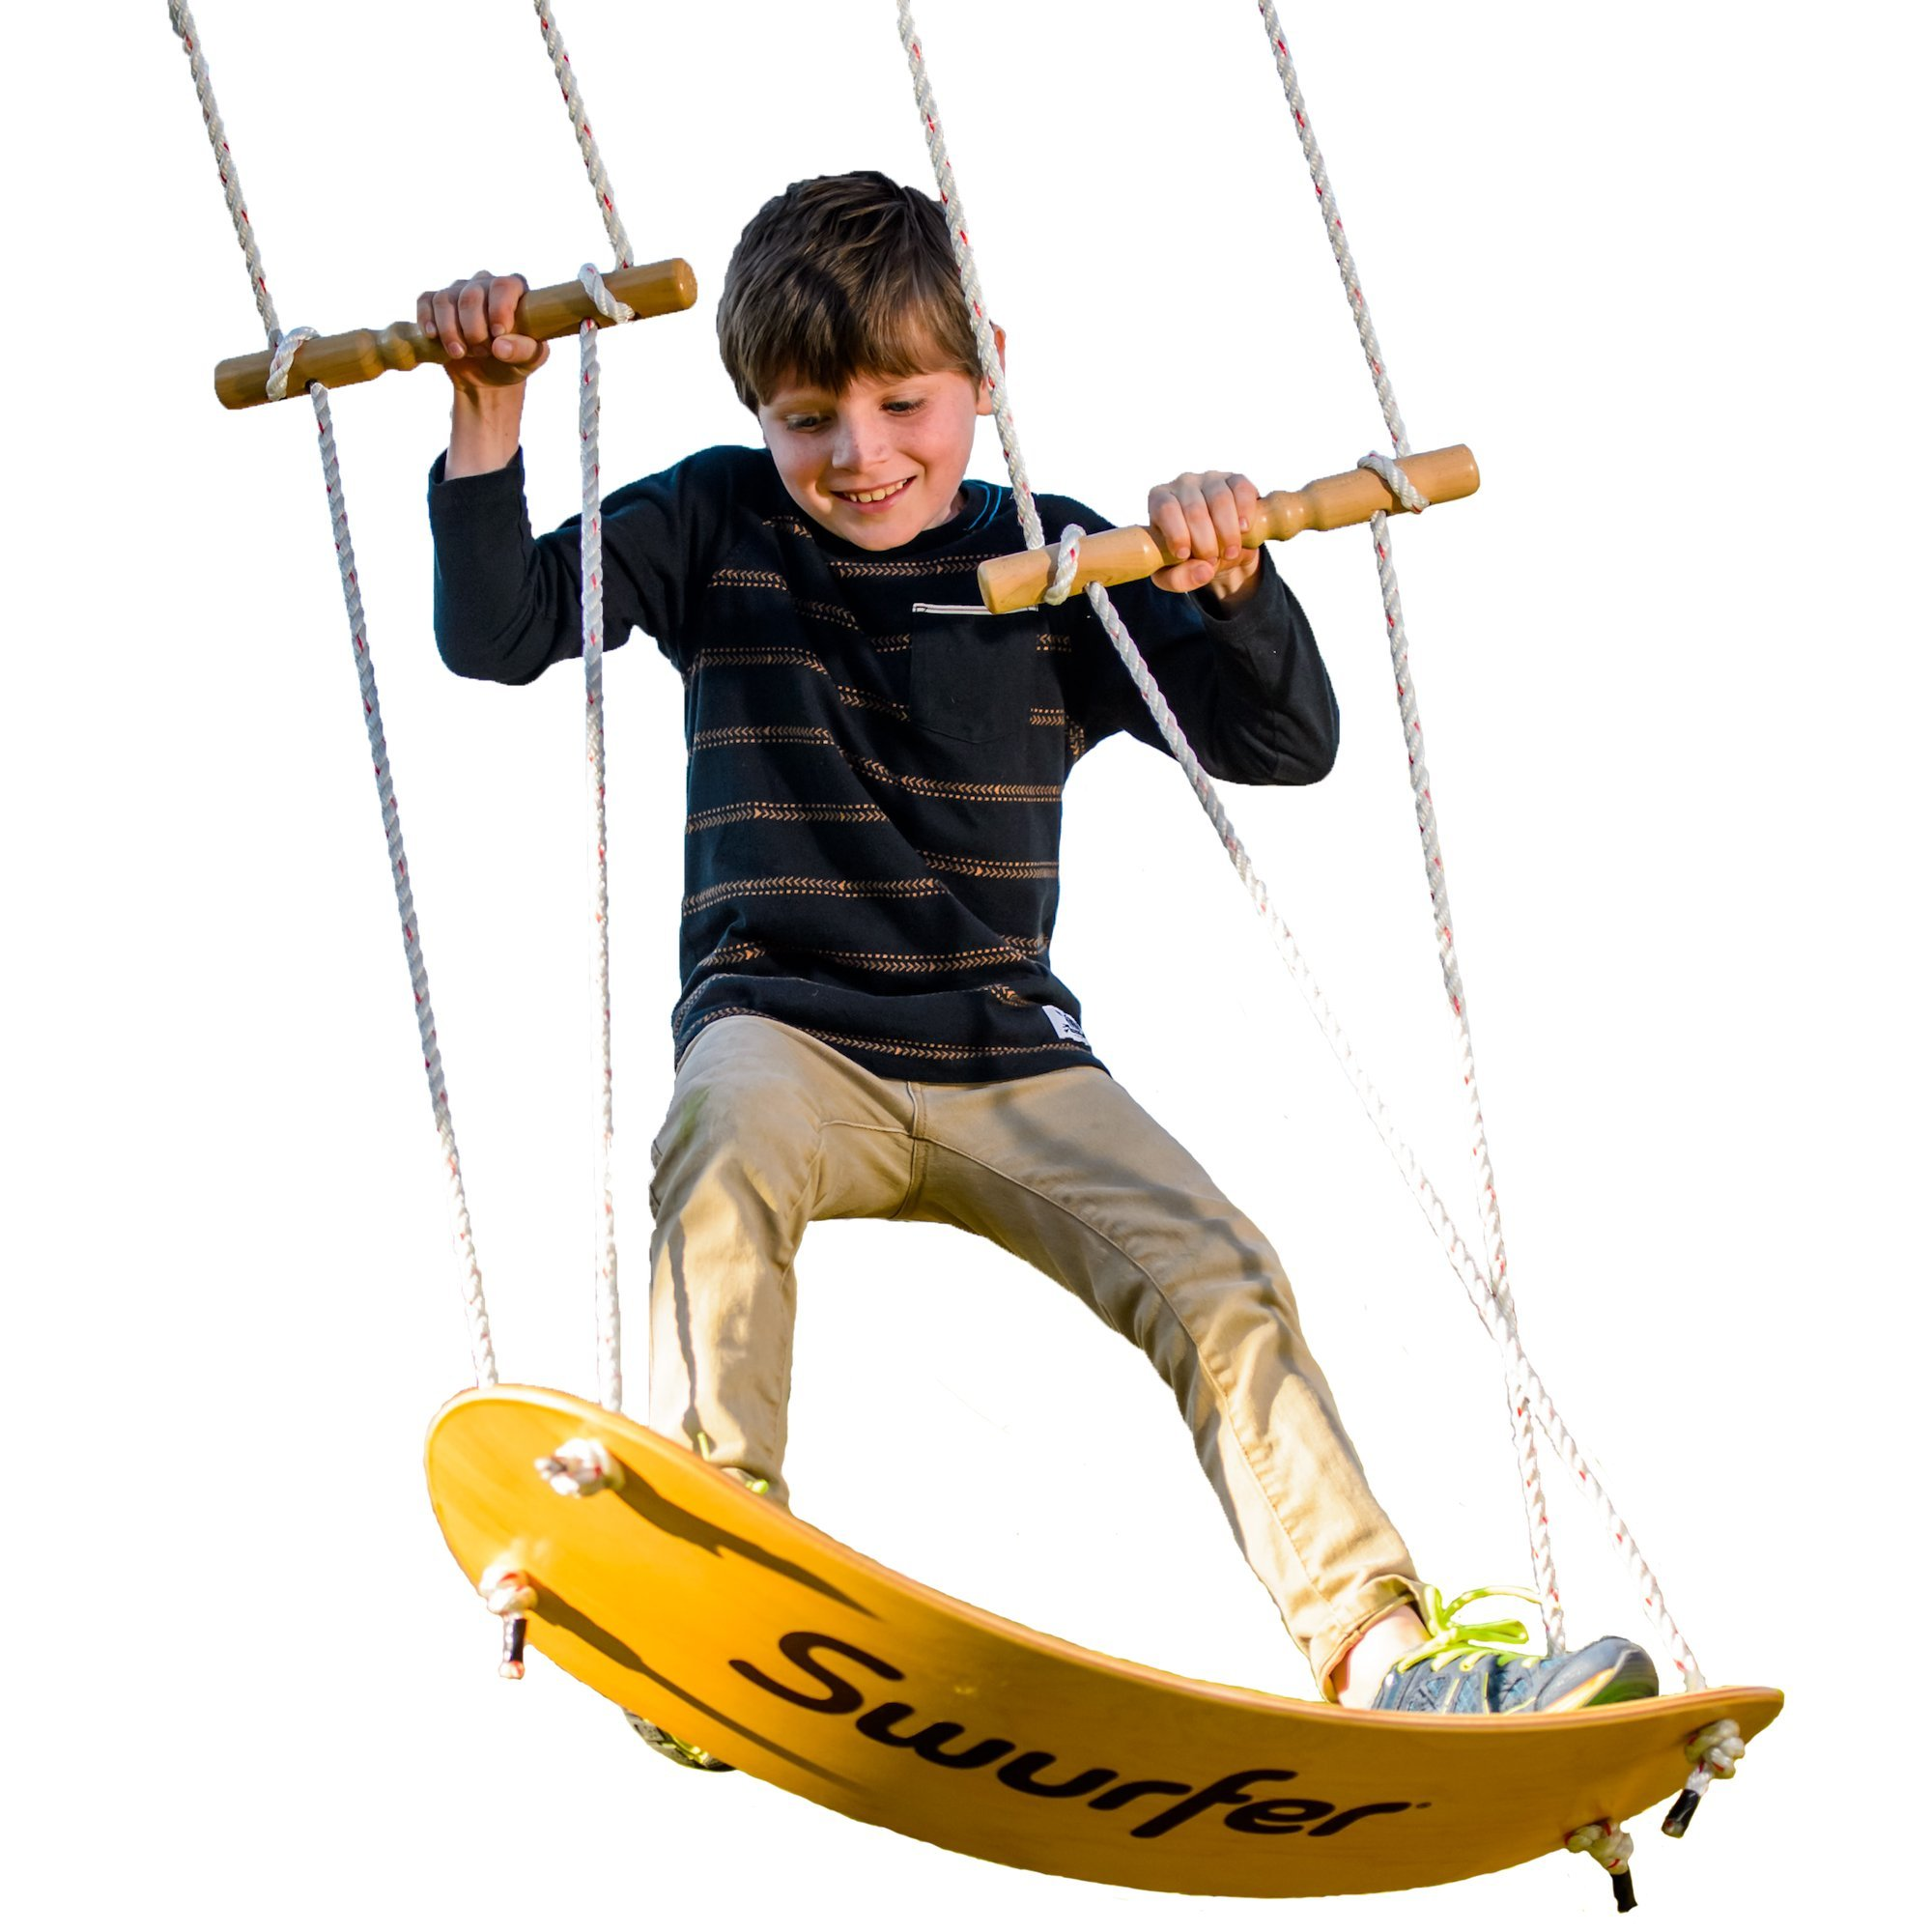 The Swurfer Original Tree Swing with Skateboard Seat Design and Adjustable Handles